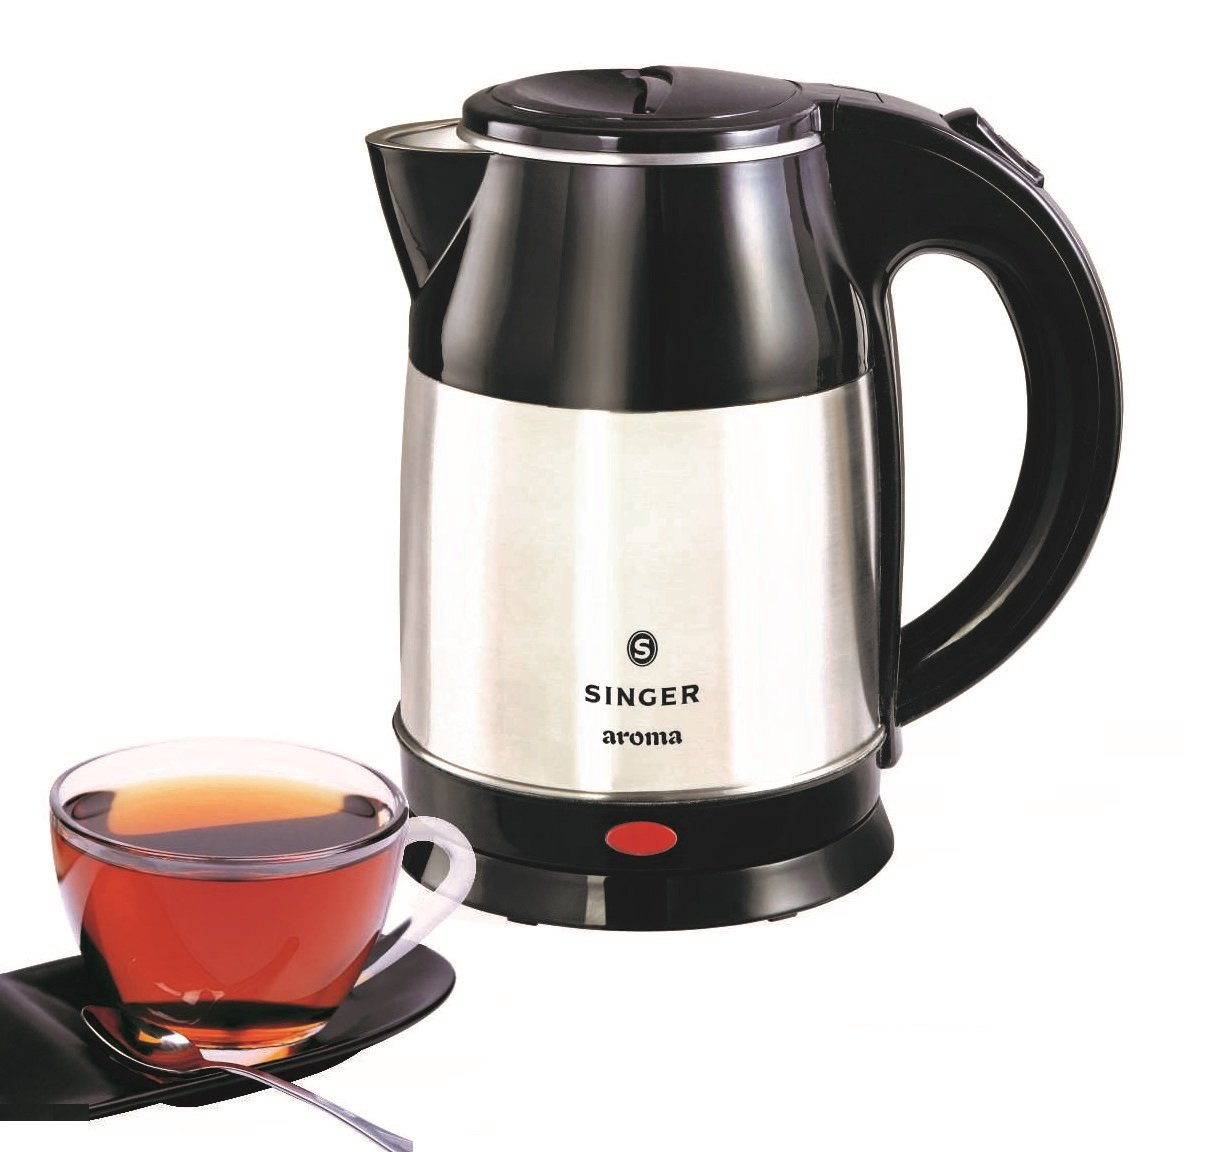 Singer Aroma 1.8-Litre Electric Kettle (Silver/Black)